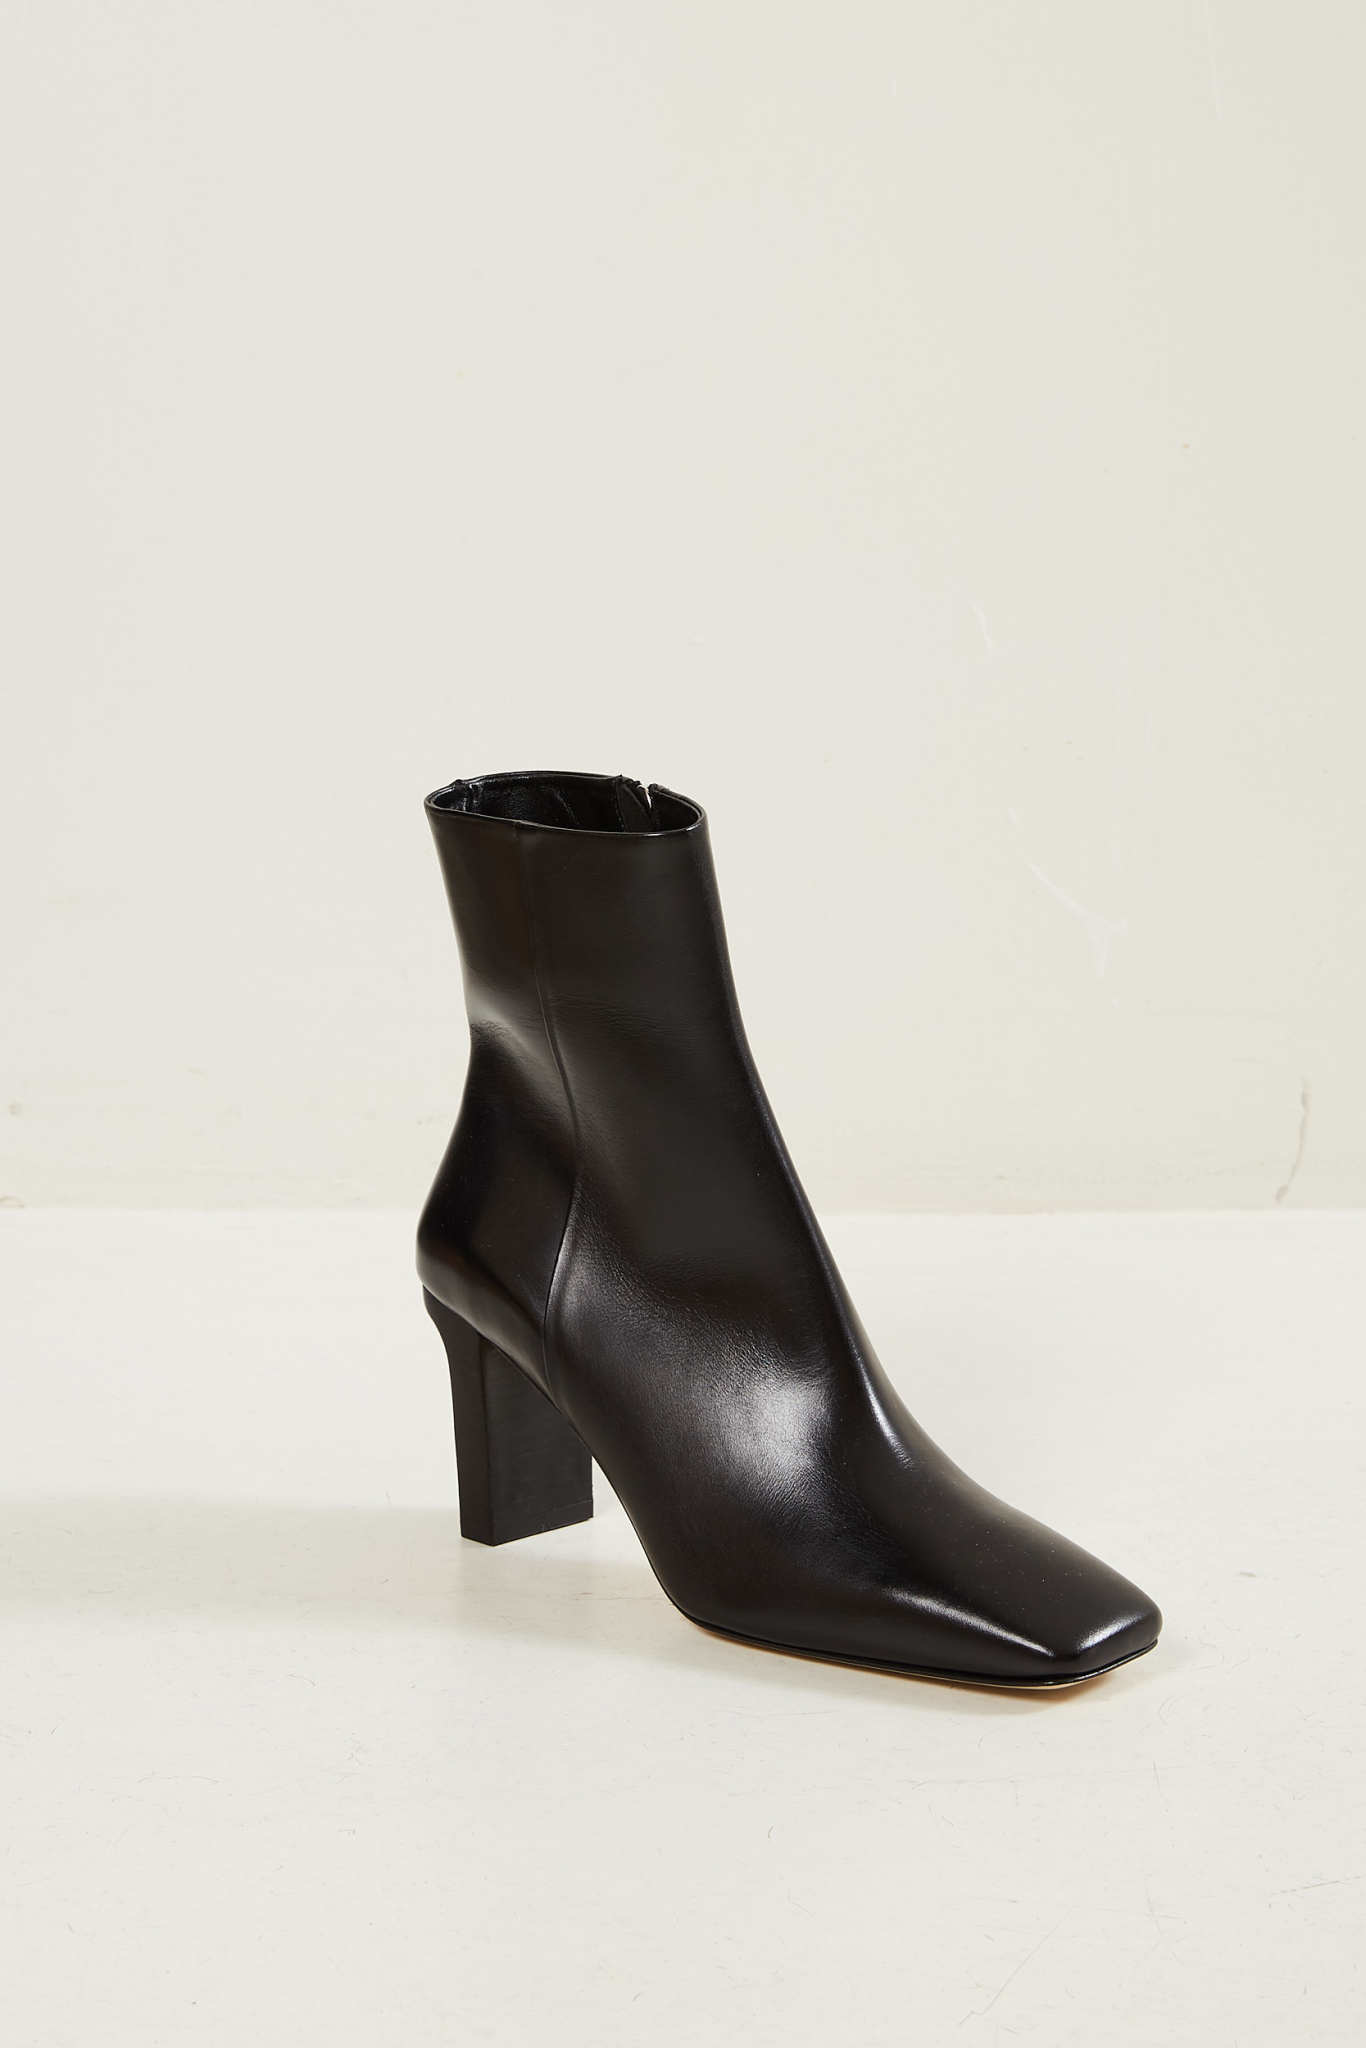 Aeyde Billy calf leather boots black